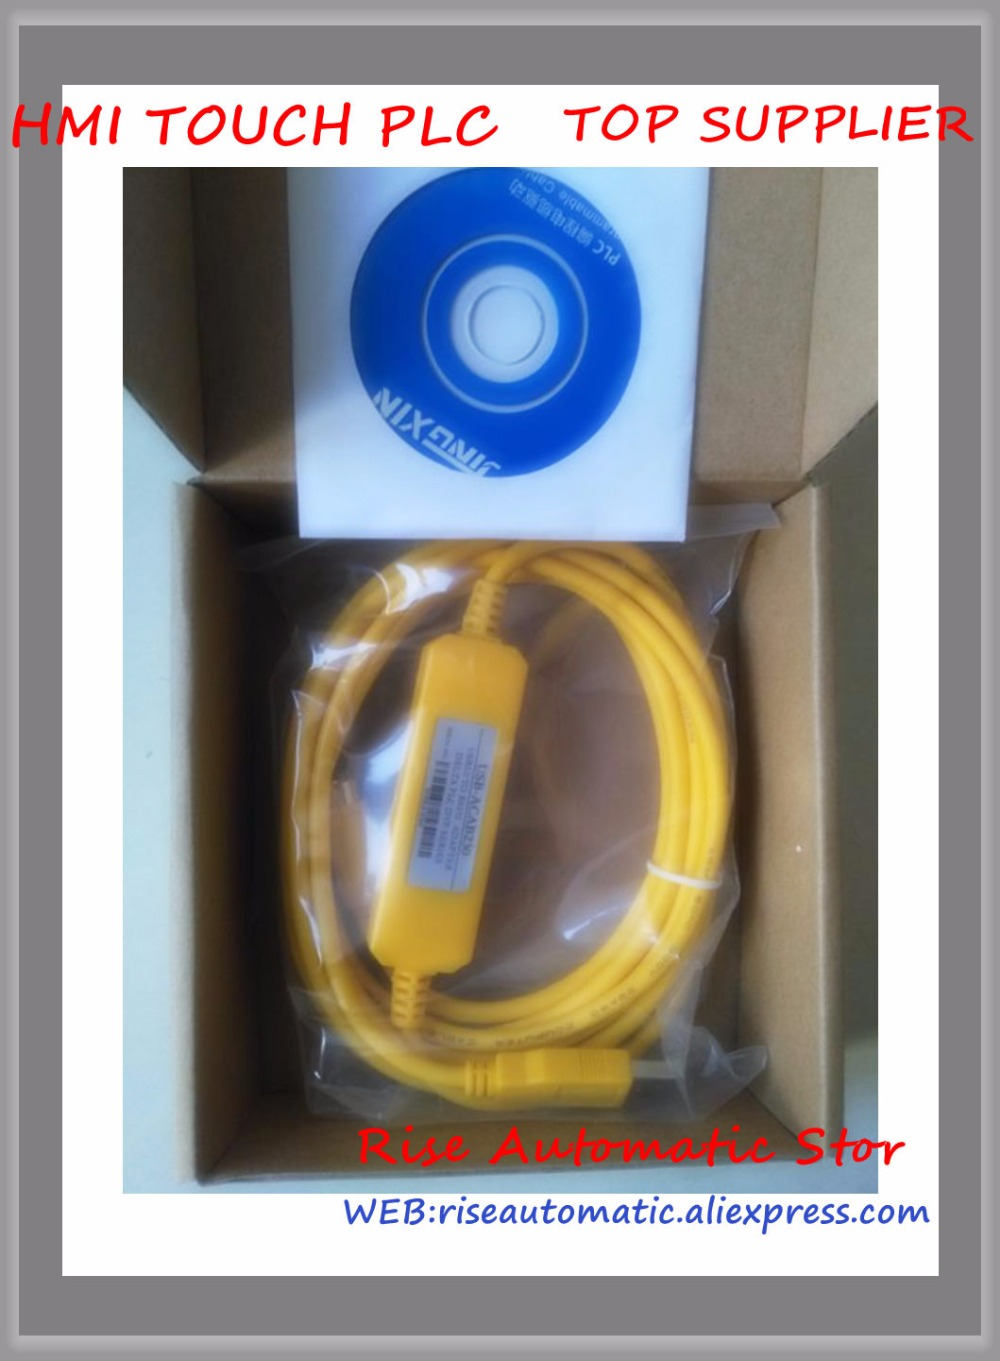 Compatible USB-ACAB230 Programmer Cable USBACAB230 (USB-DVP) USB Adapter for DVP series PLC Win7 Win8 Usable